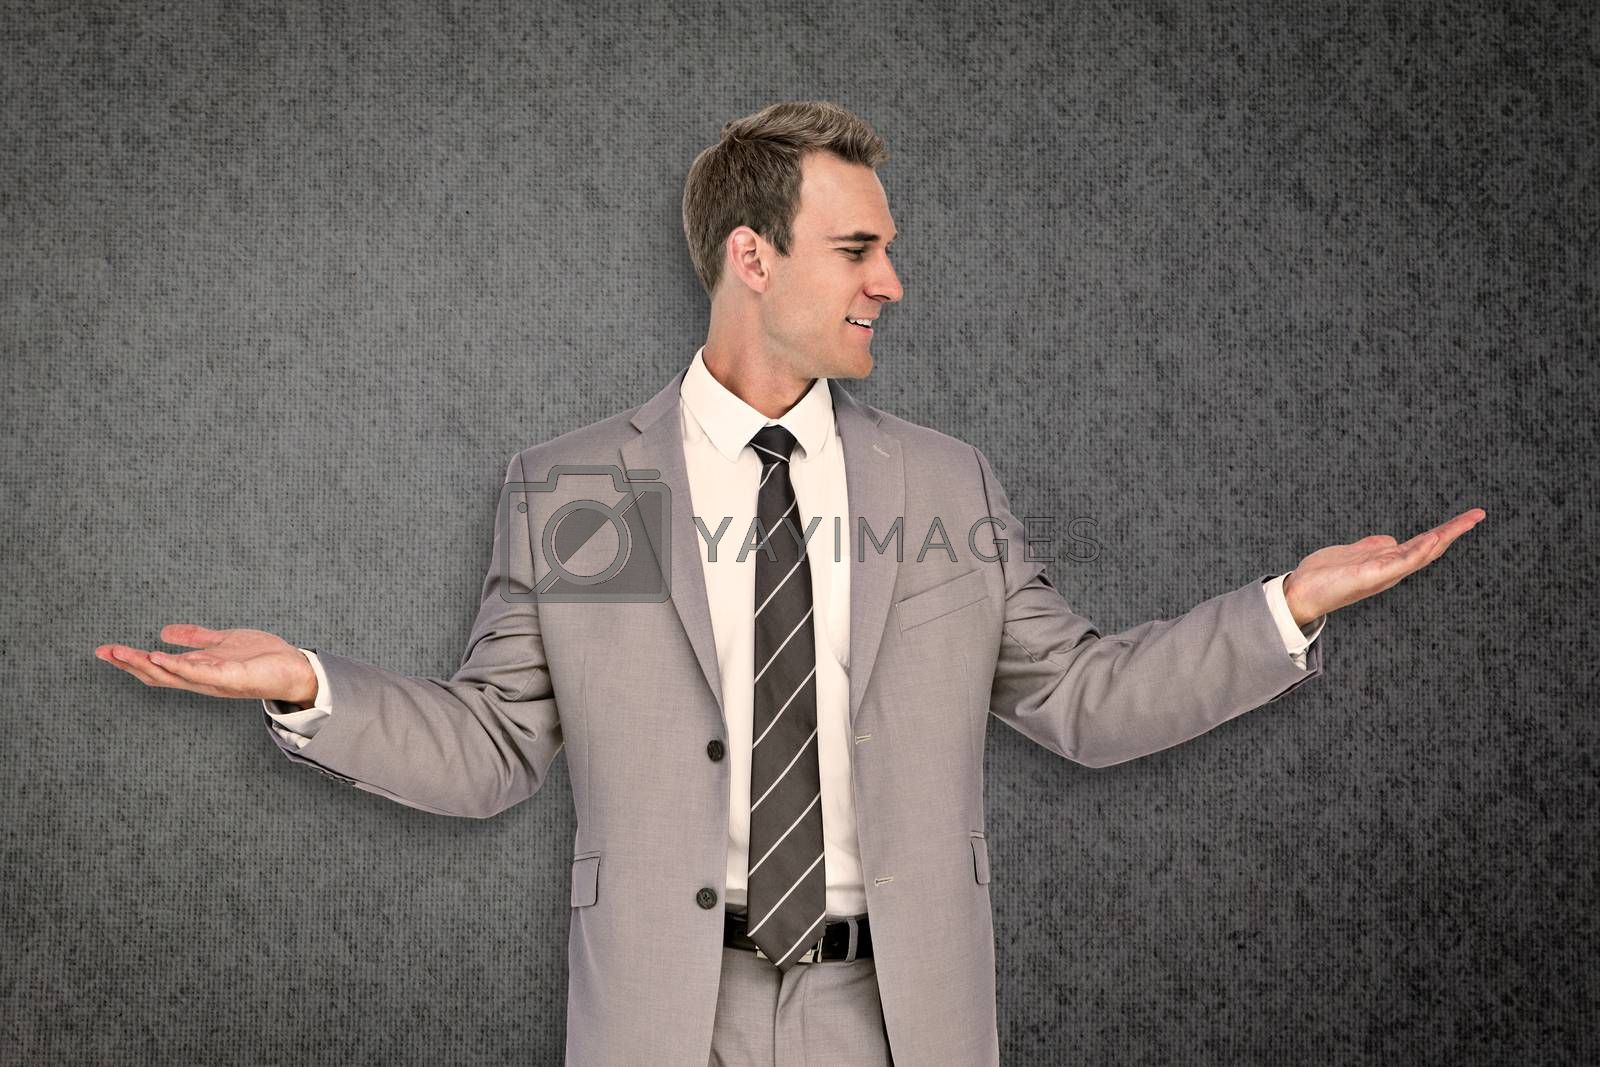 Businessman with hands out against grey background